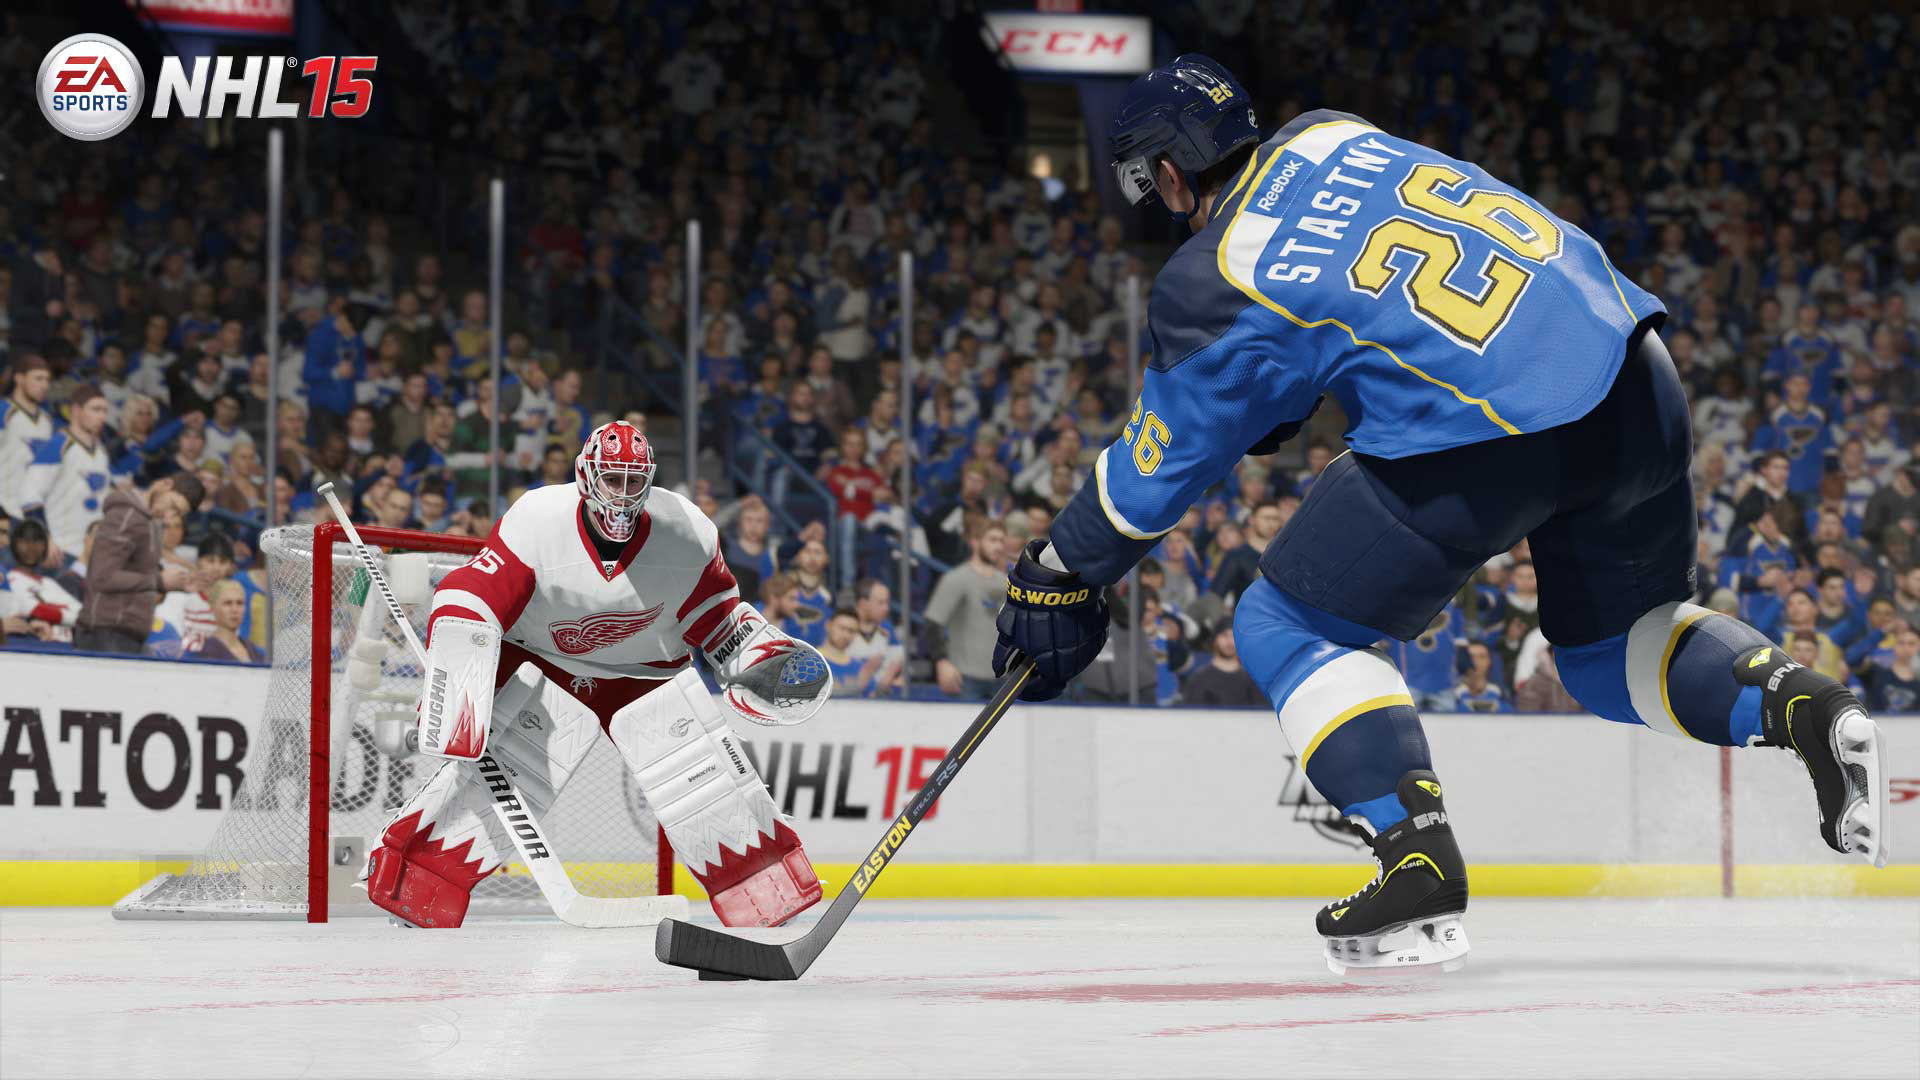 Nhl 15 Game Ps4 Playstation